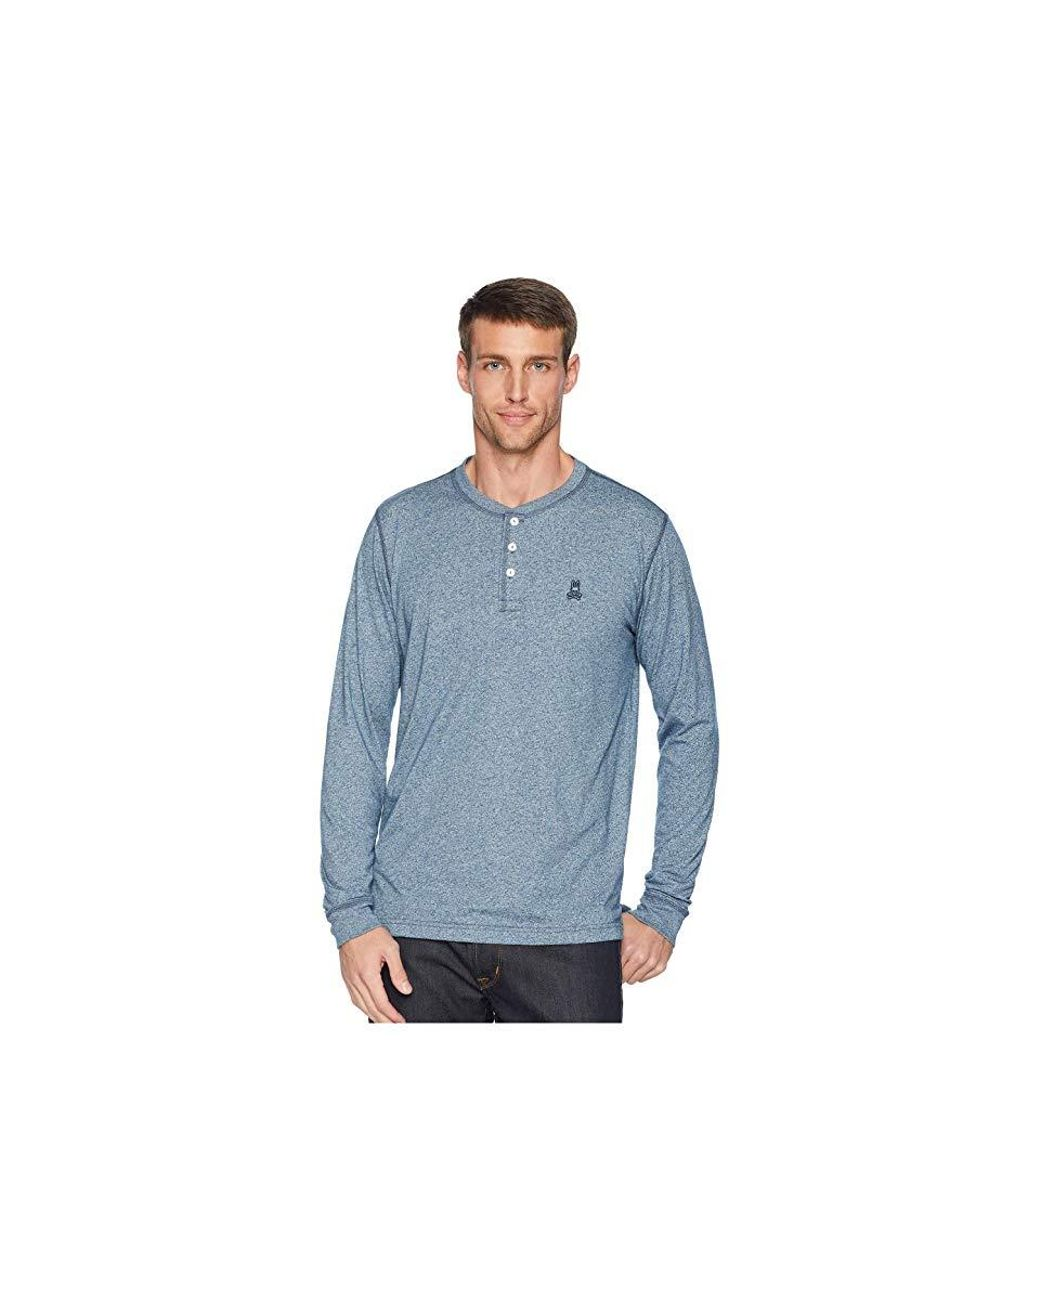 d5f799c2f9 Psycho Bunny Long Sleeve Henley (frenchie Salt Pepper) Clothing in Blue for  Men - Save 38% - Lyst